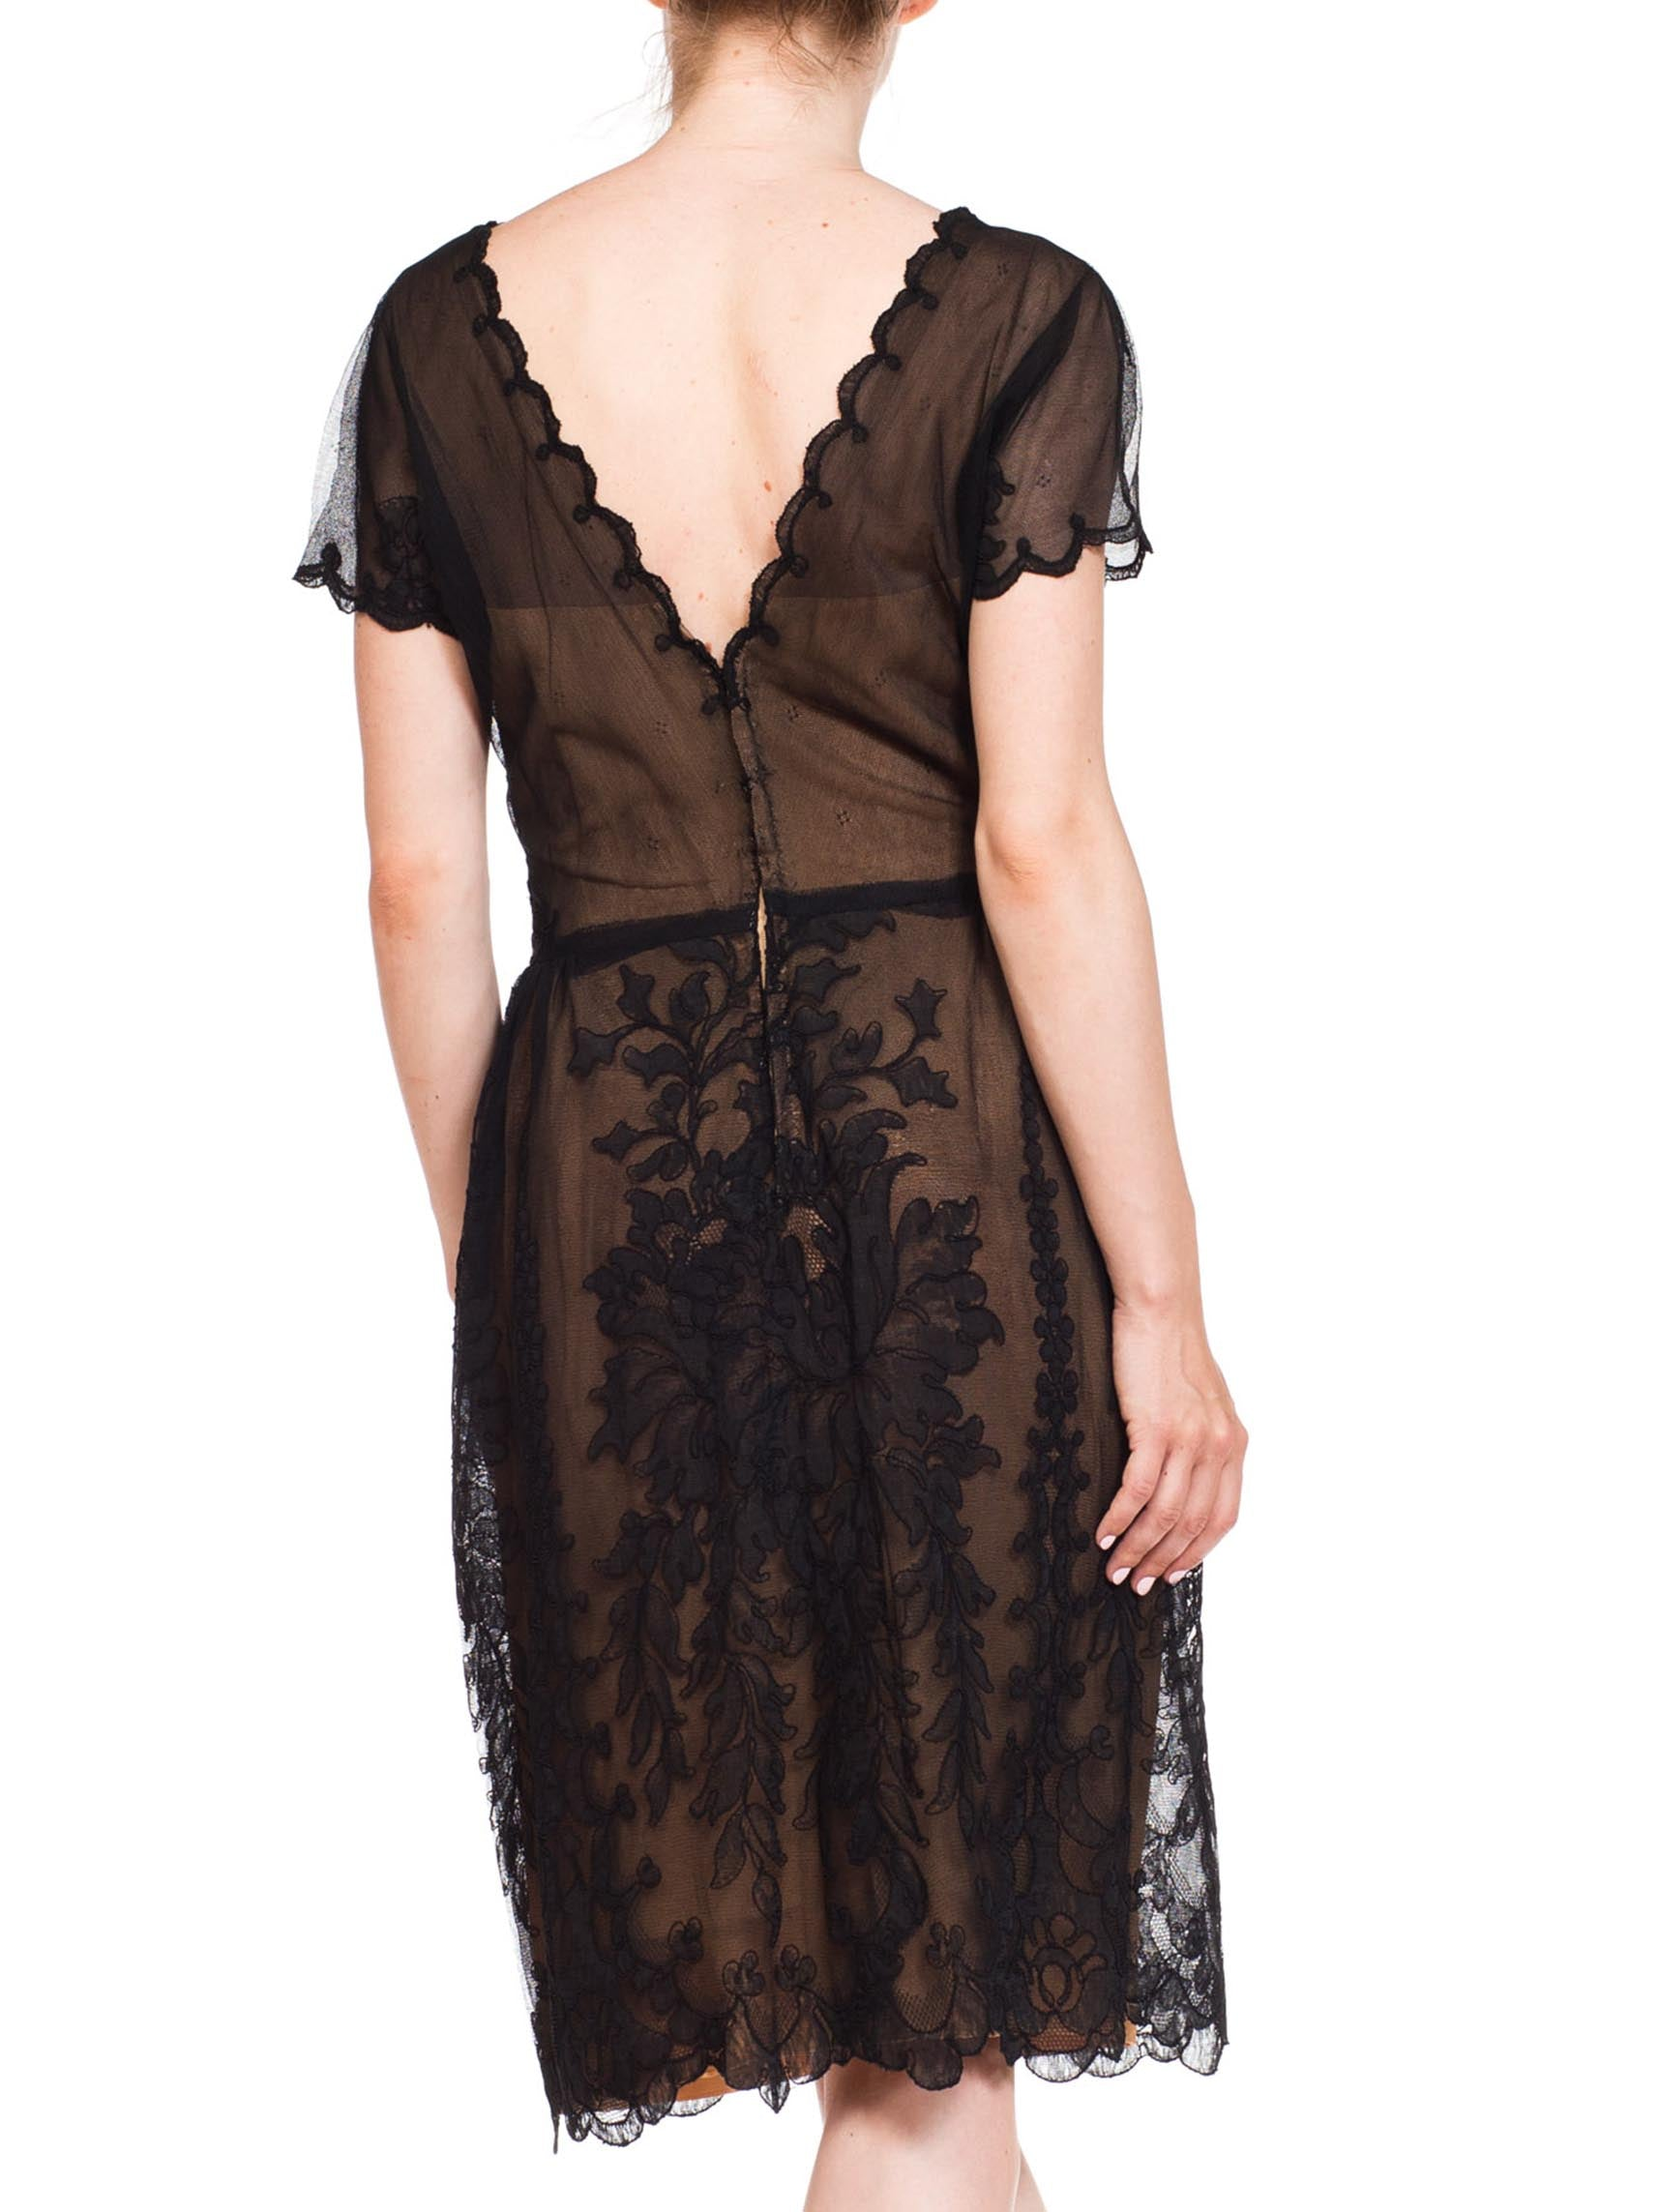 1950S IRENE FOR BULLOKS WILSHIRE Black Silk & Rayon Fine Lace Cocktail Dress